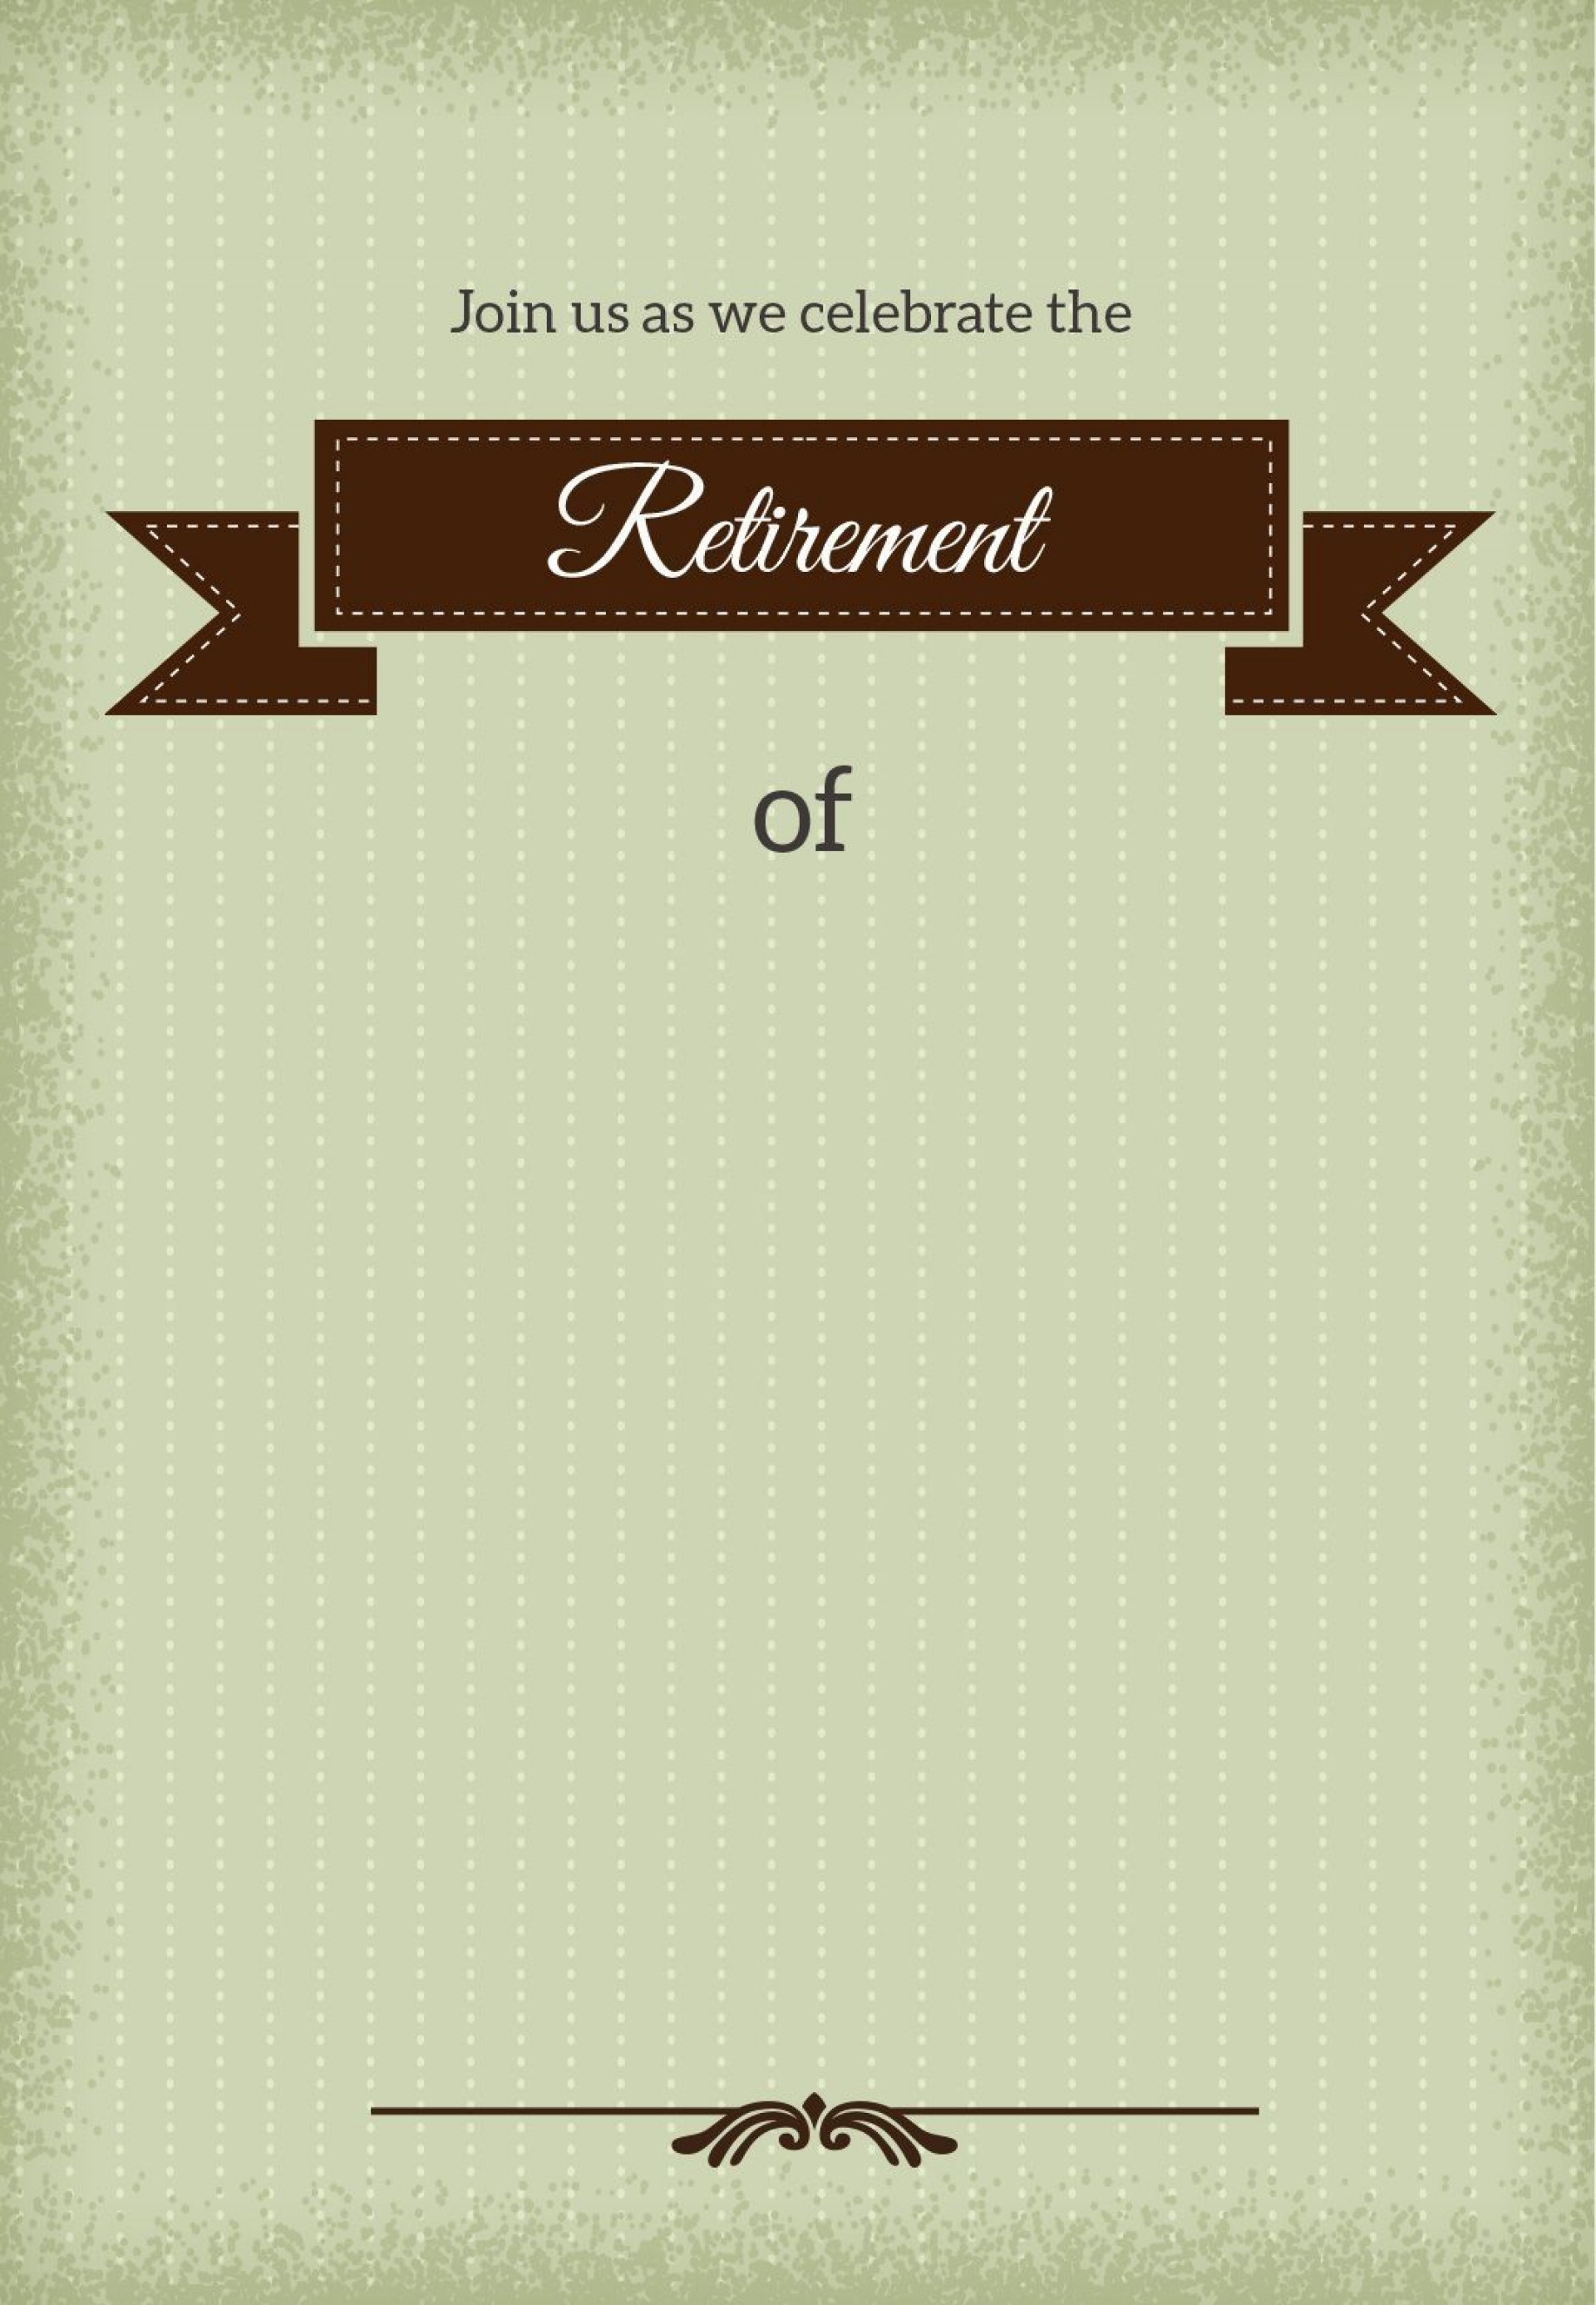 001 Stirring Retirement Invitation Template Free Idea  Party Printable For Word1920